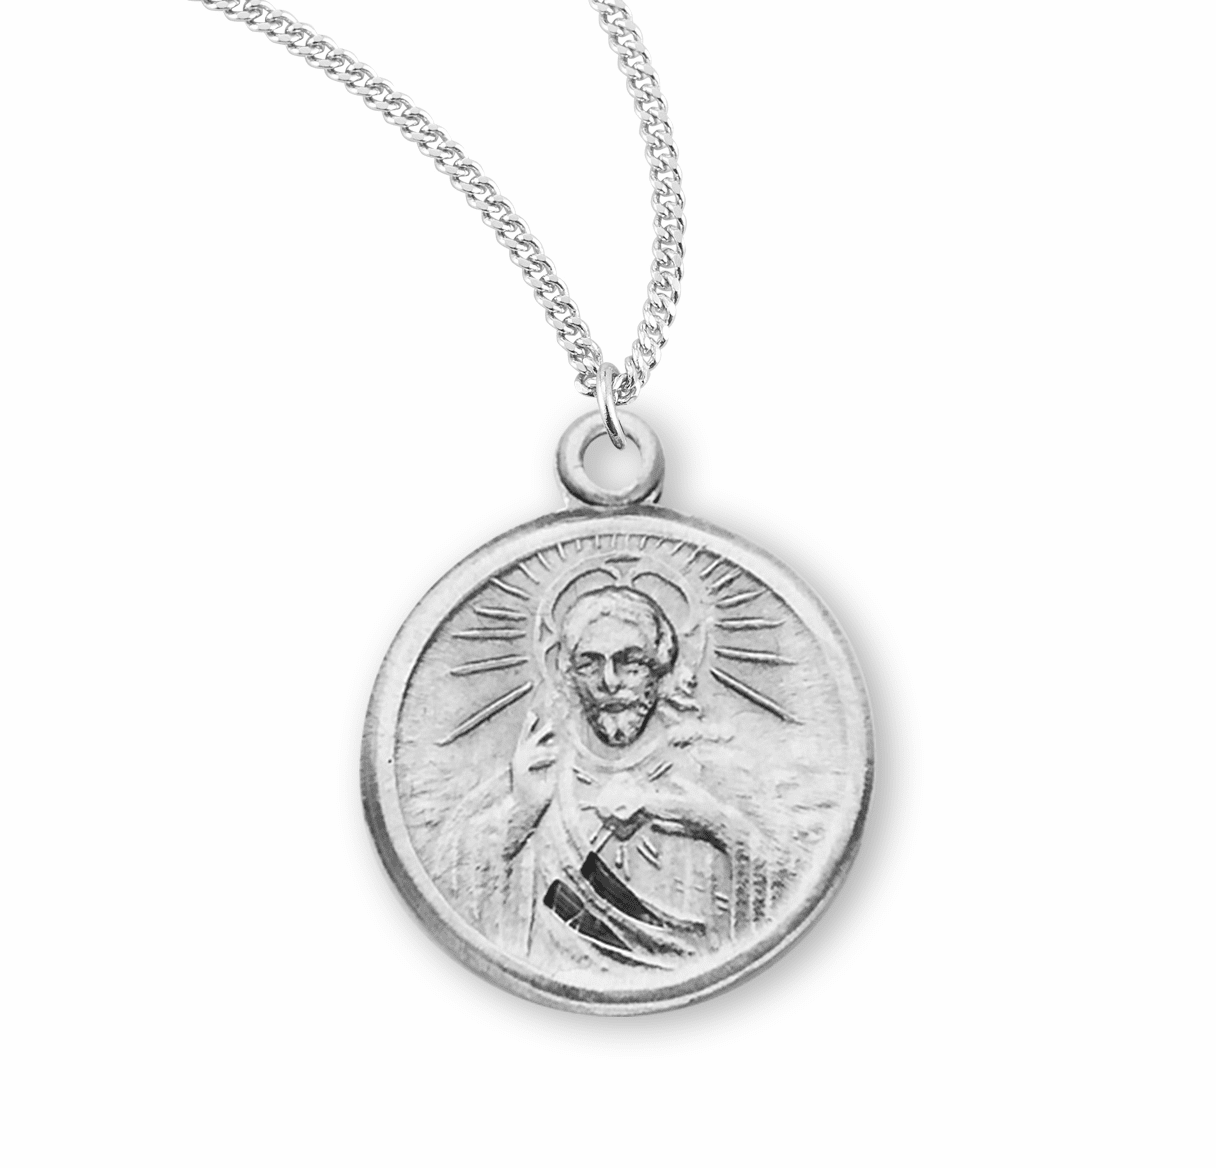 Small Round Sacred Heart of Jesus Scapular Medal Necklace by HMH Religious